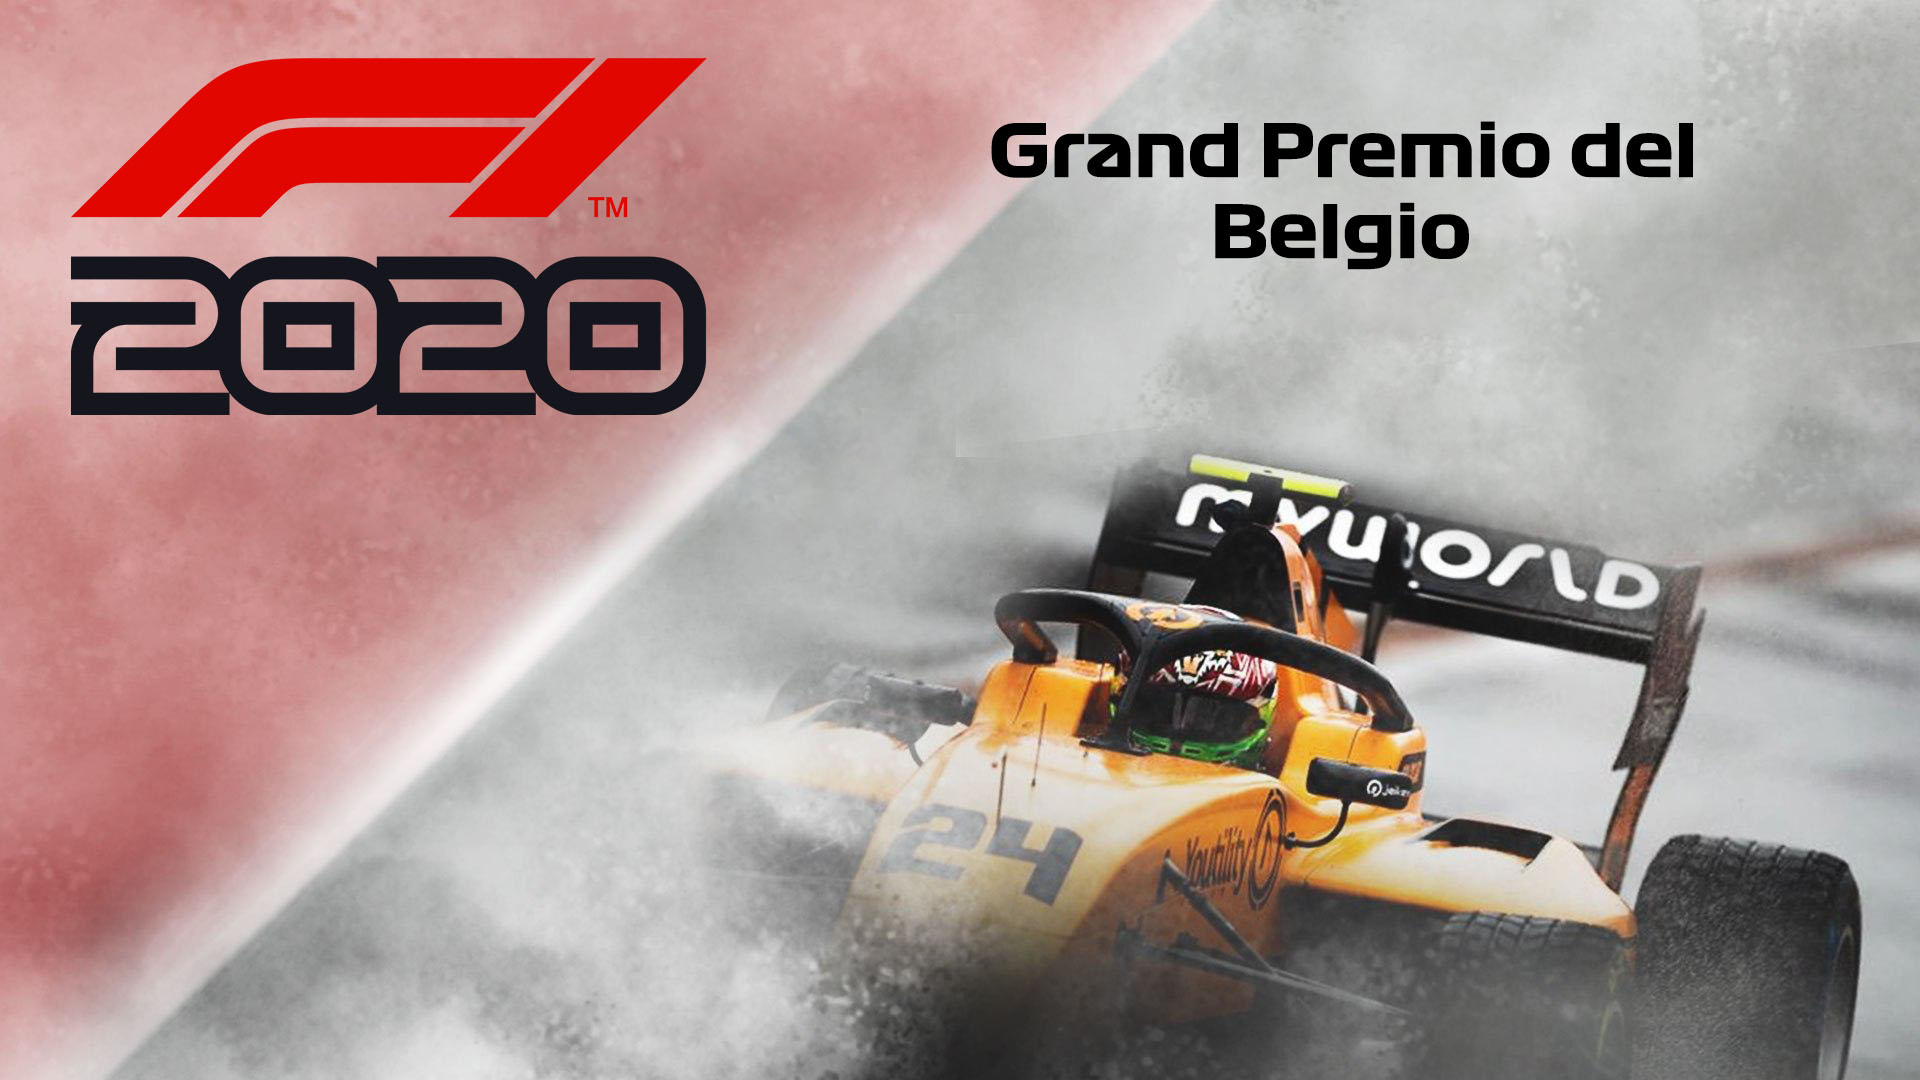 F1, GP del Belgio 2020: dove vedere la gara in TV e streaming